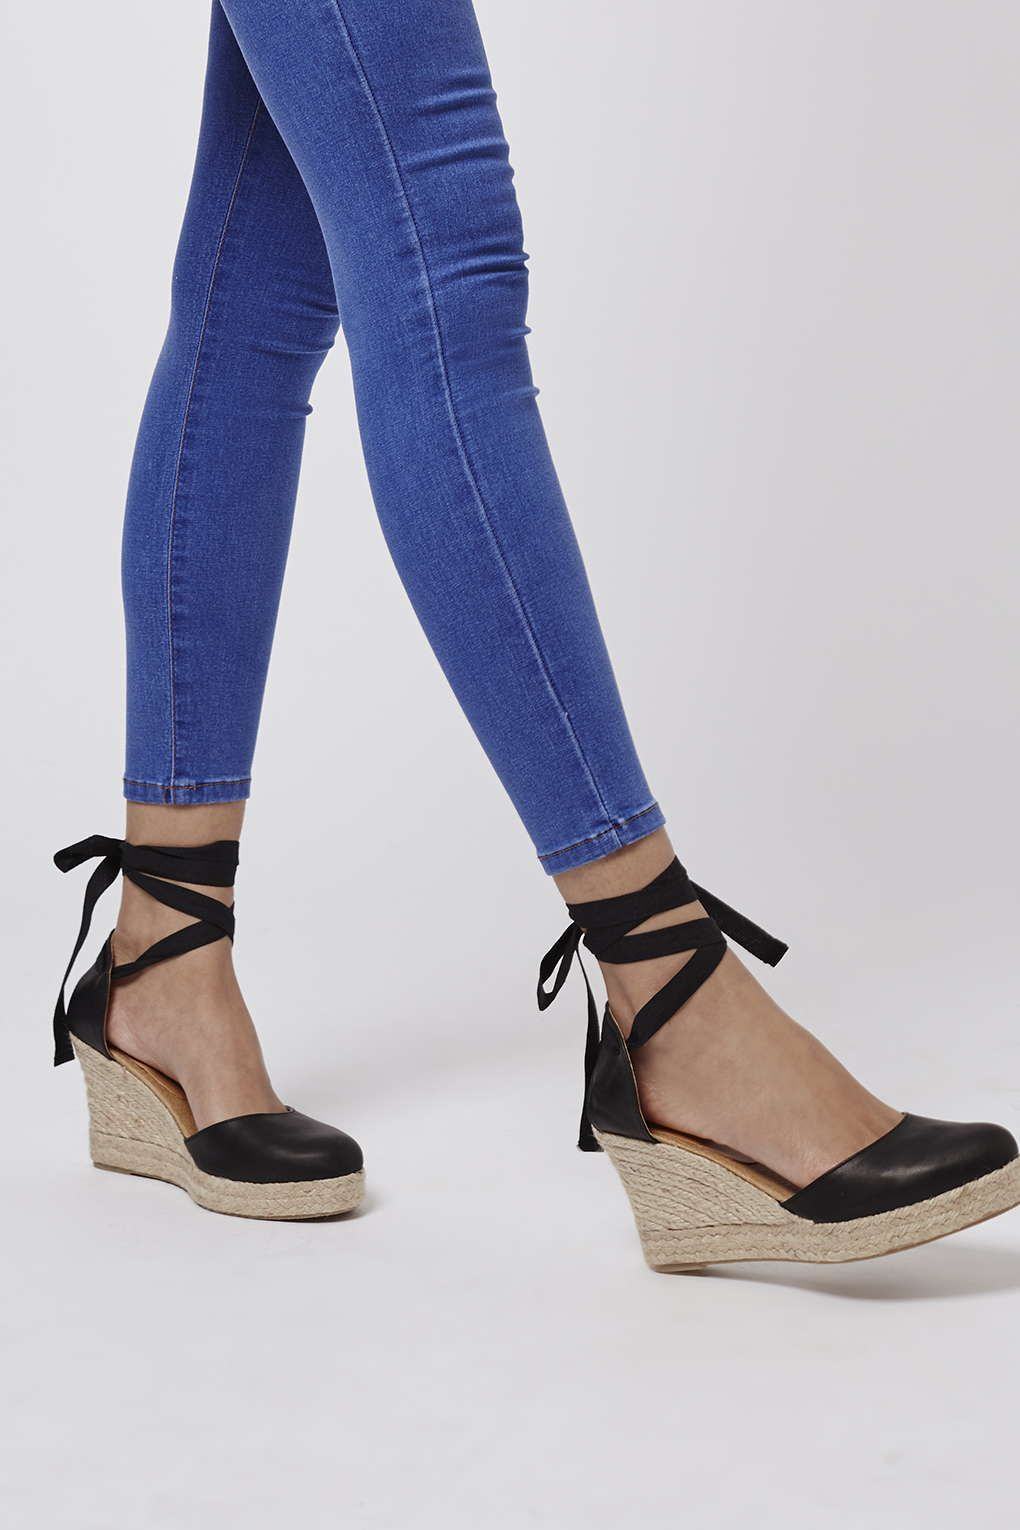 dd0db75431a8 WARMTH Tie Wedges